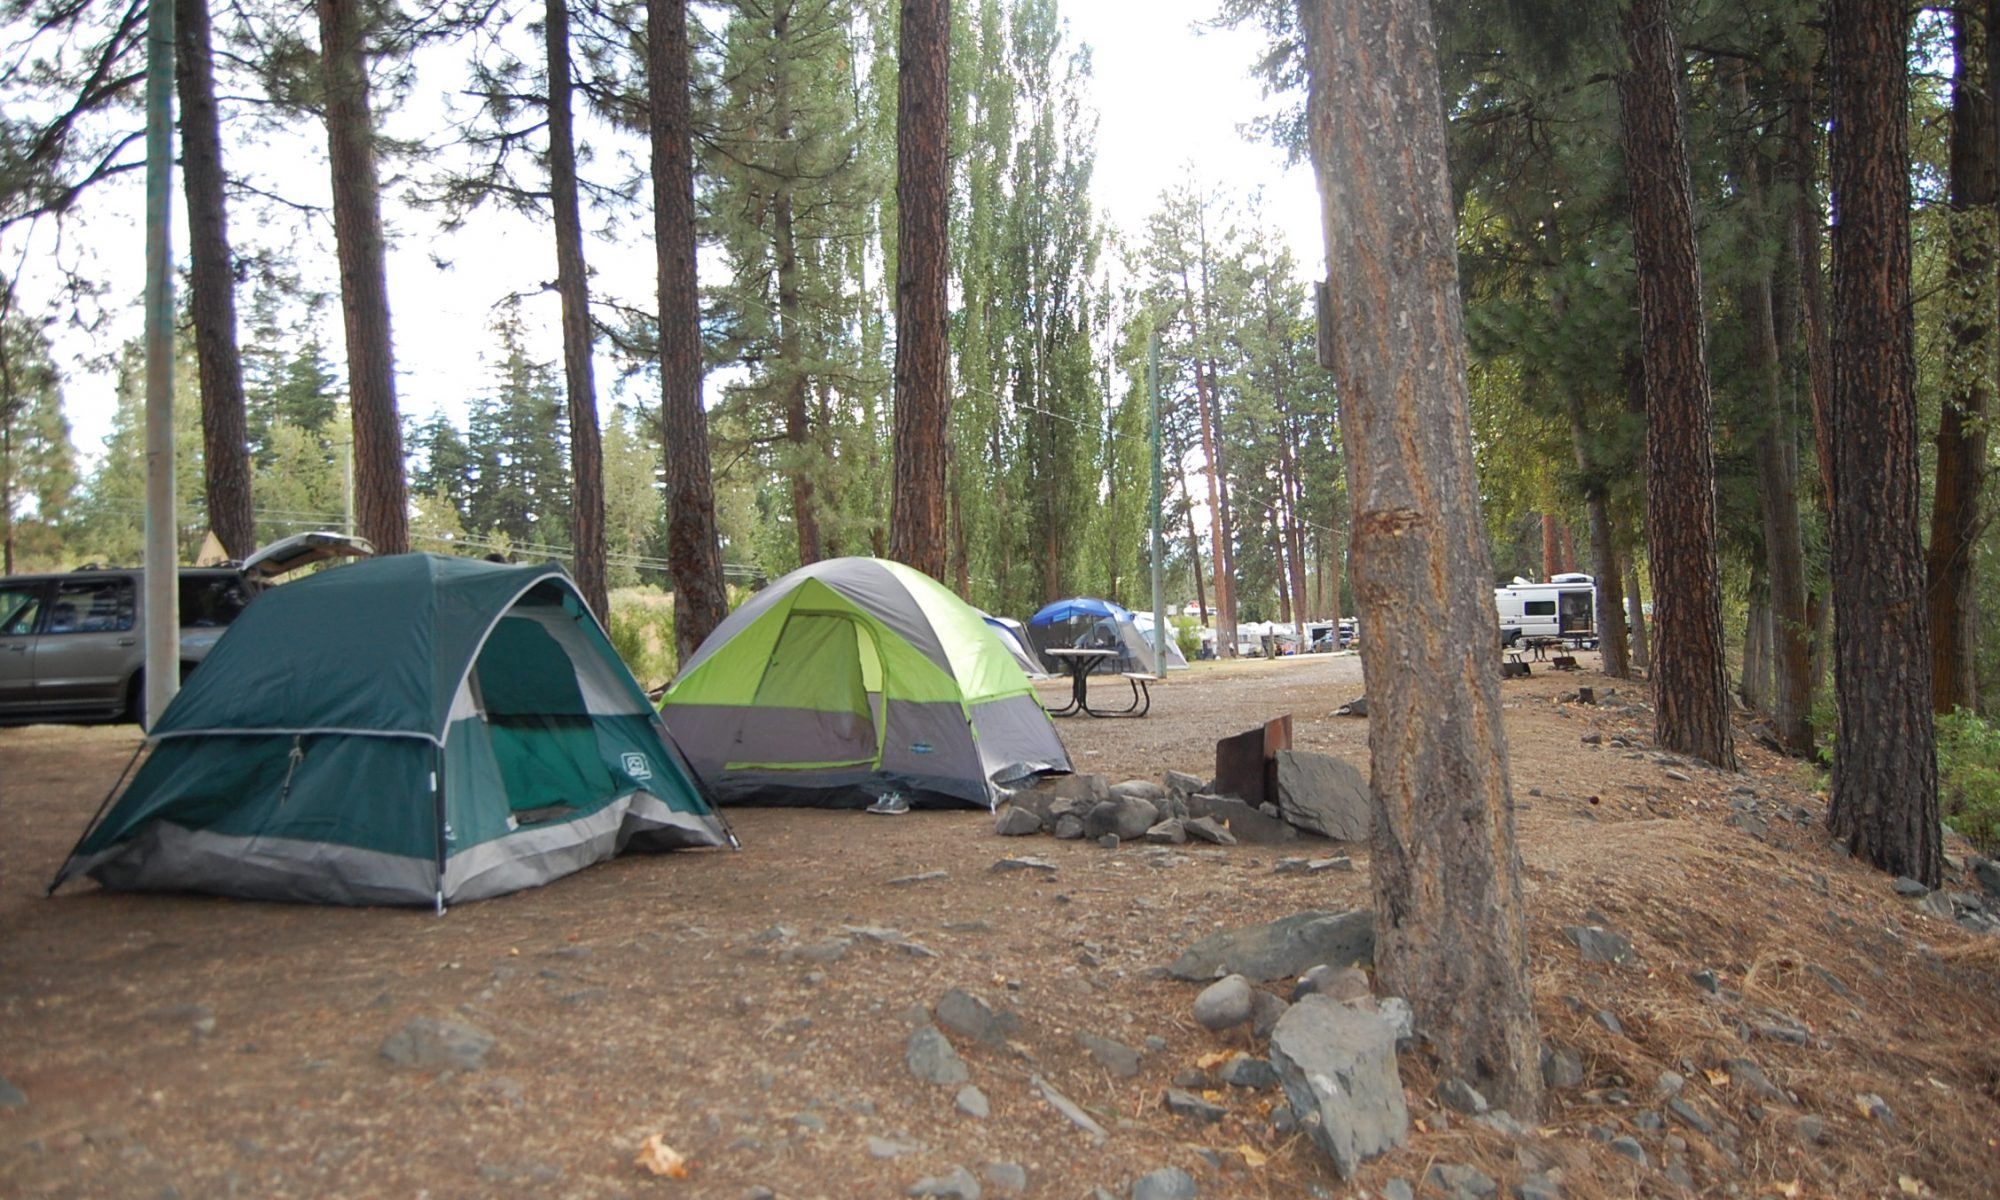 How to host your campsite on Kamp Smart